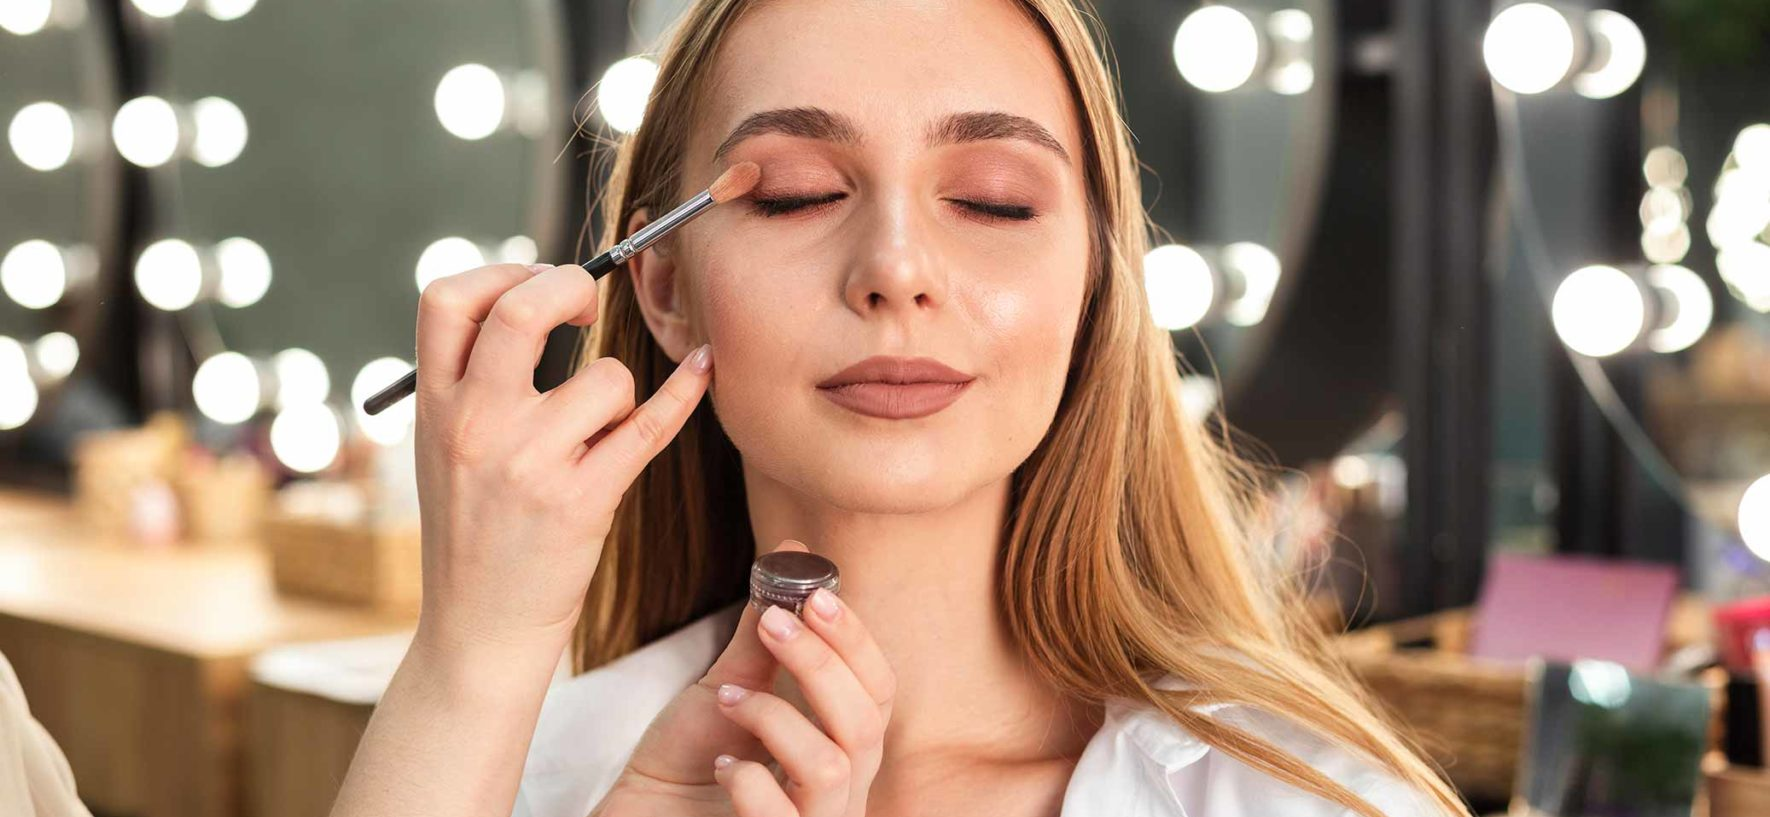 7 Common Mistakes Done While Applying Makeup